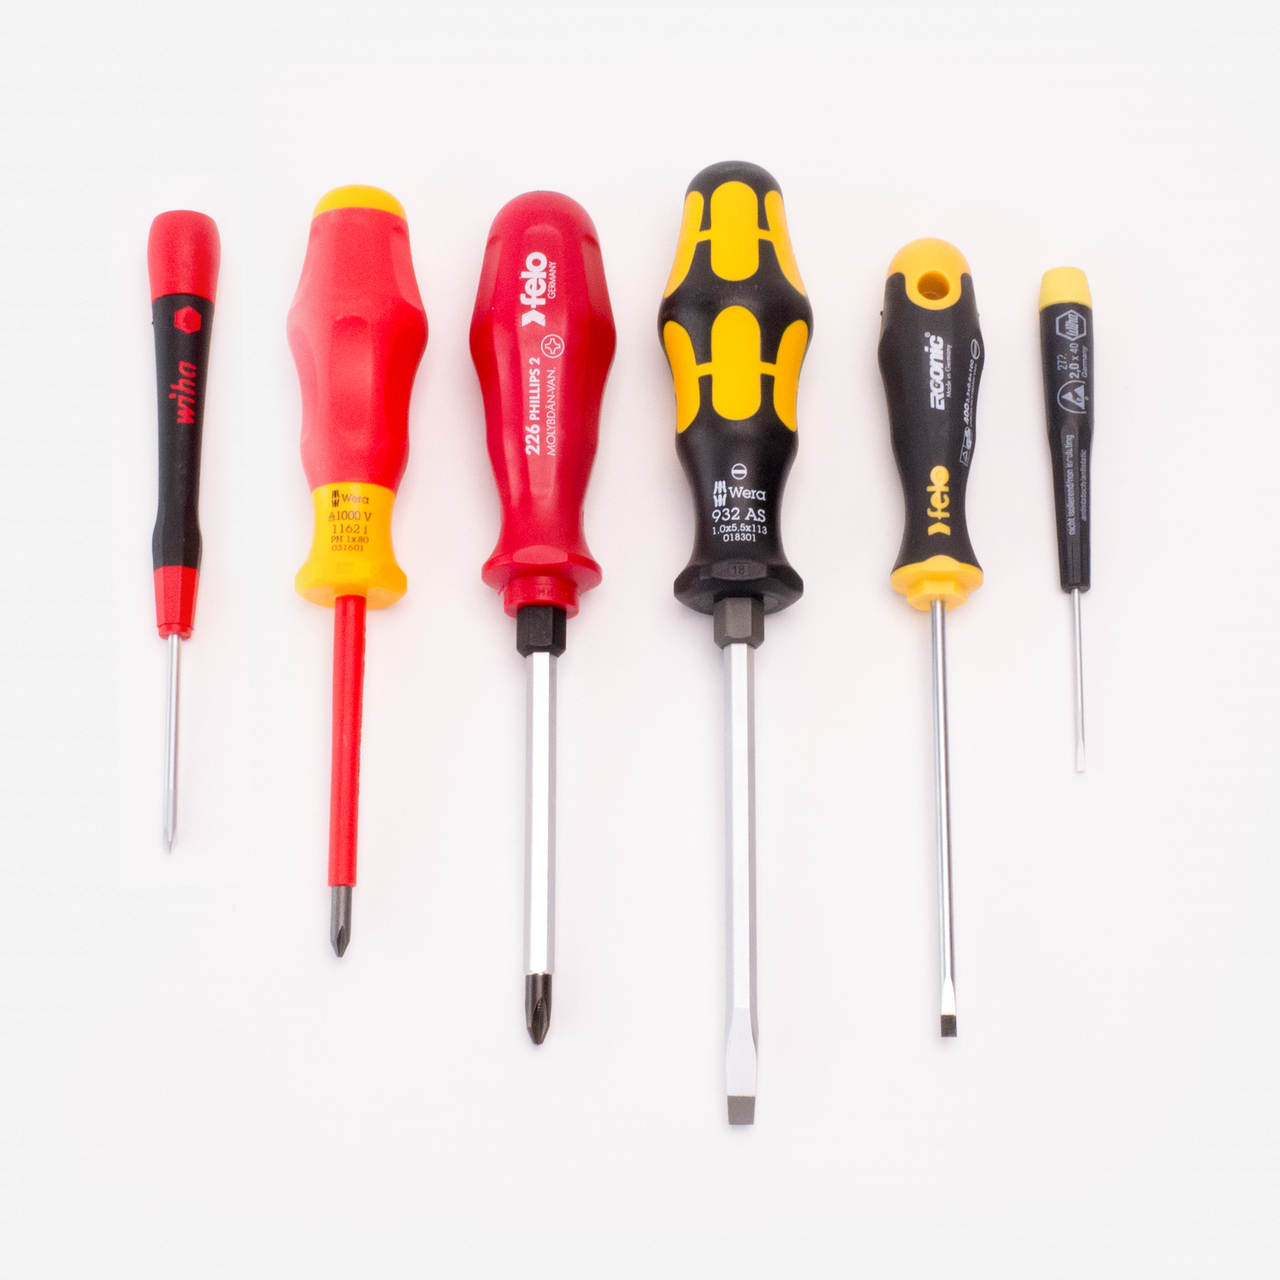 Derek's Versatile Screwdriver Set - KC Tool